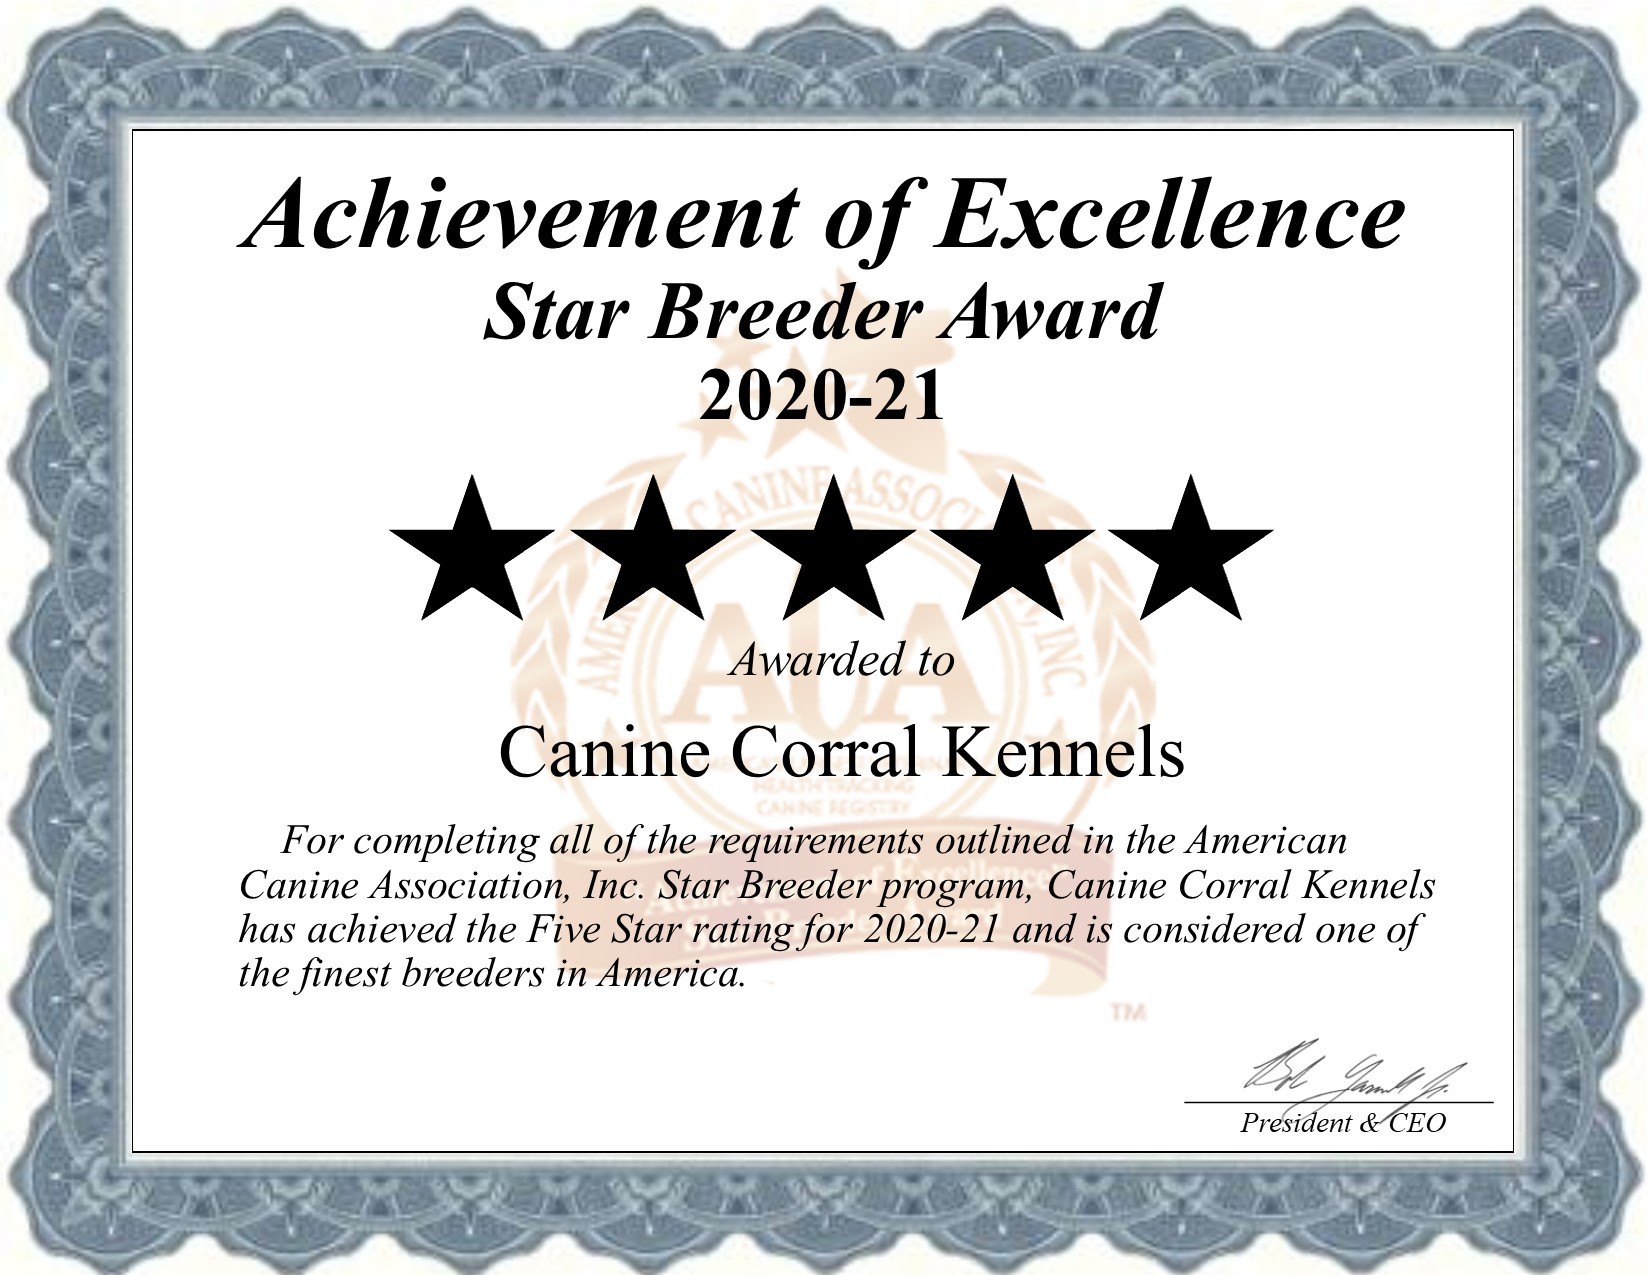 Canine Corral, Kennels, dog, breeder, star, certificate, Canine Corral-Kennels, Huntington, station, NY, New-York, puppy, dog, kennels, mill, puppymill, usda, 5-star, aca, ica, registered, yorkies